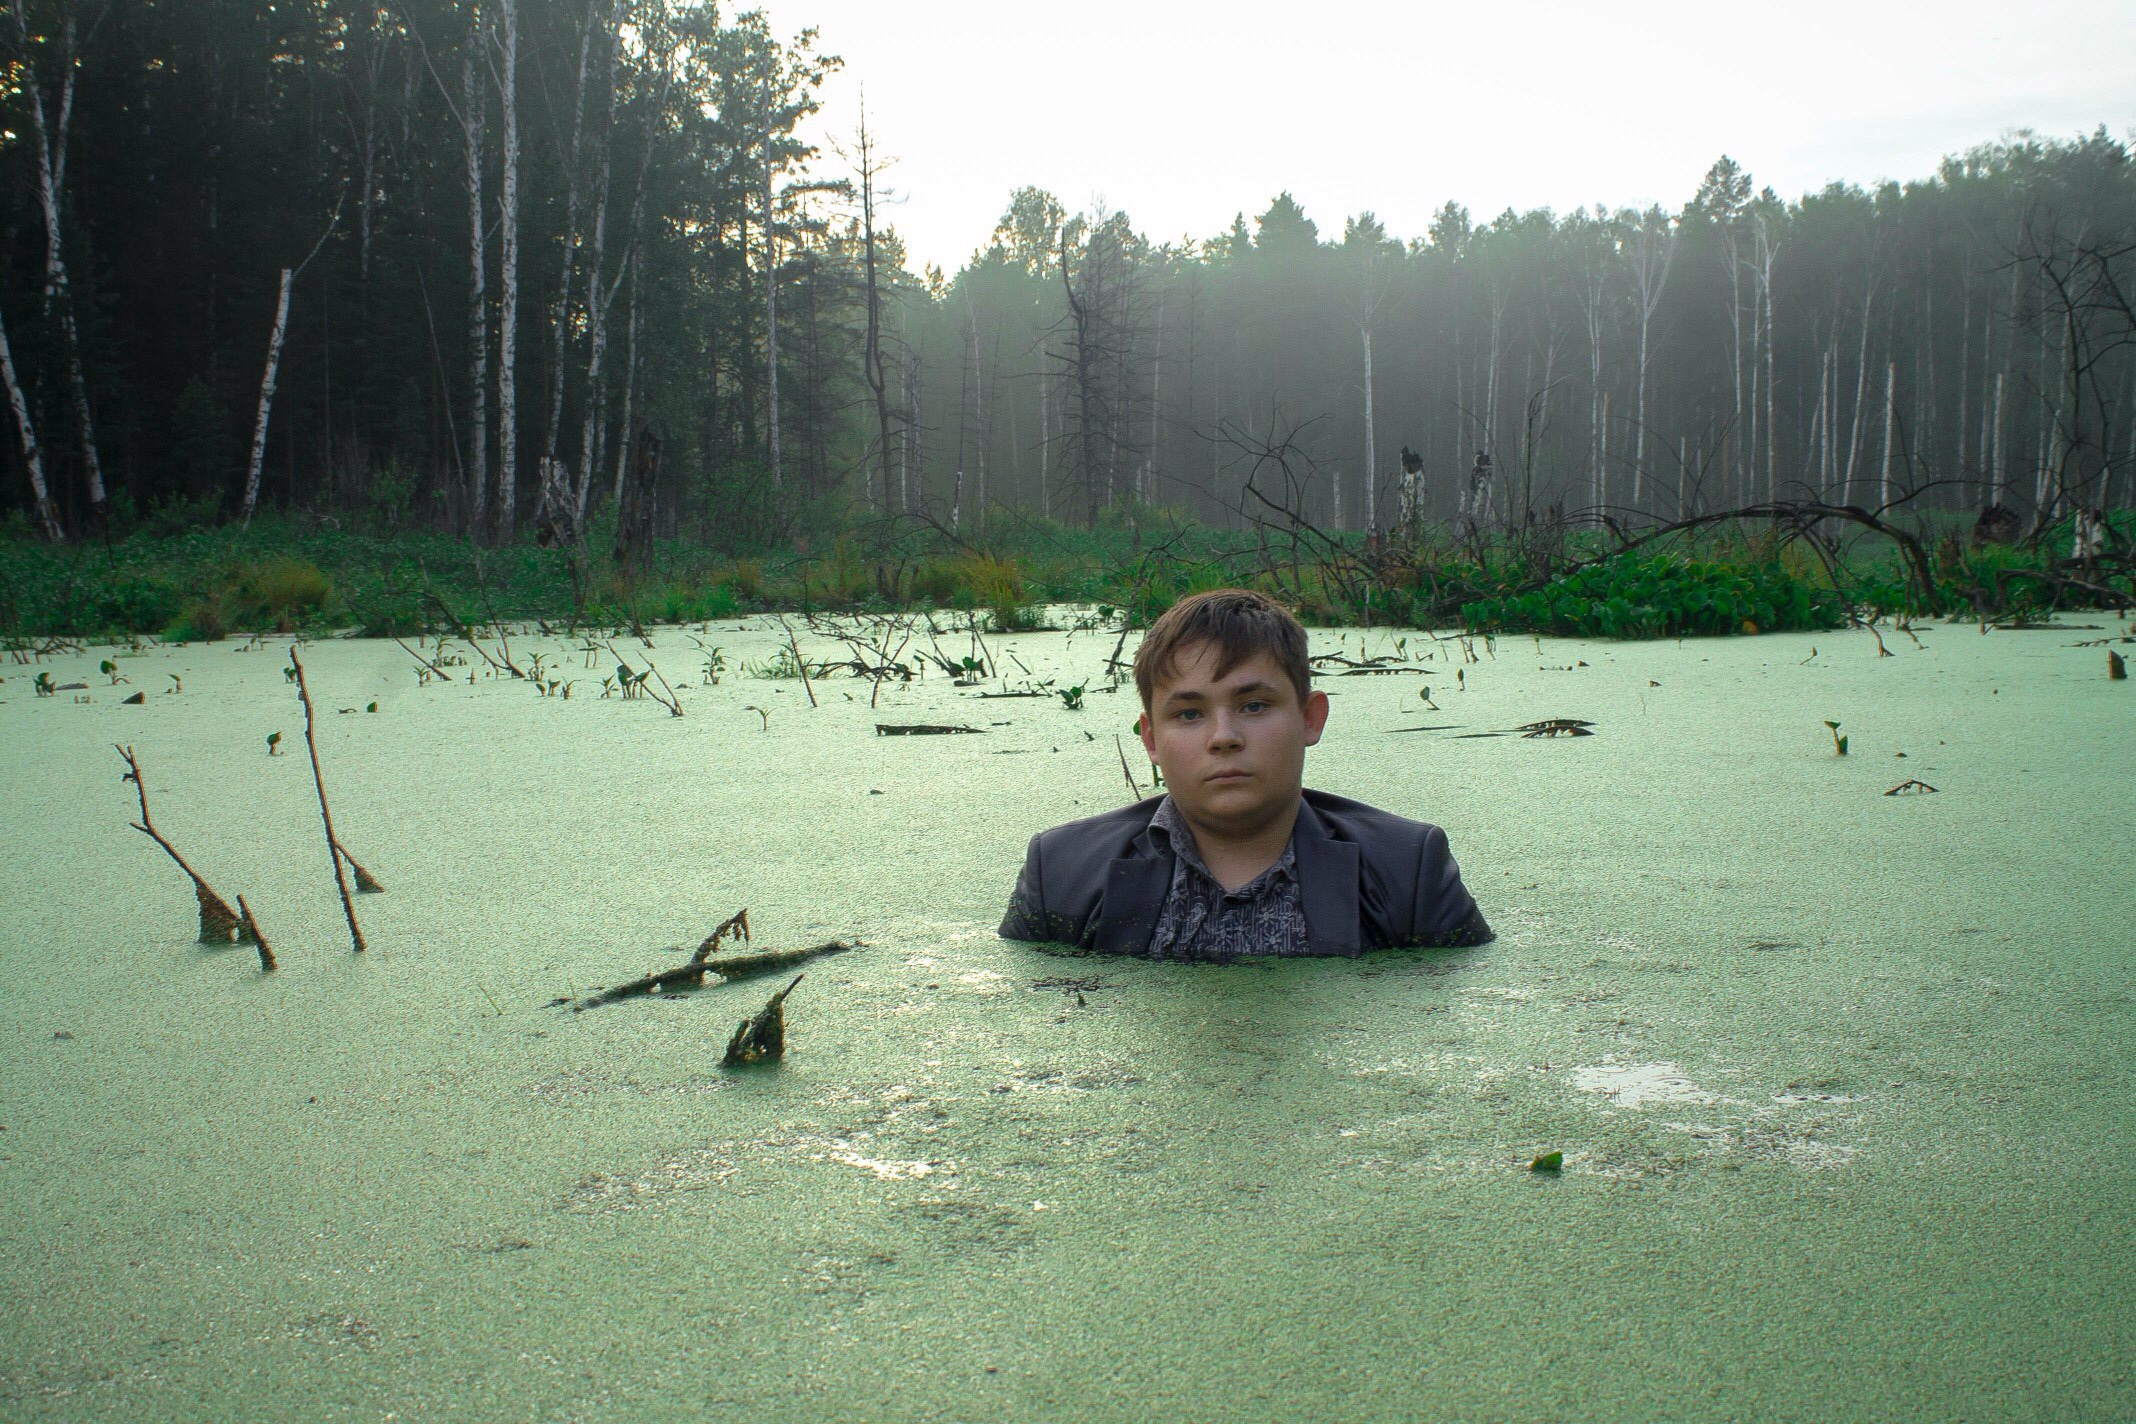 Awesome Russia - Dude In Swamp 3